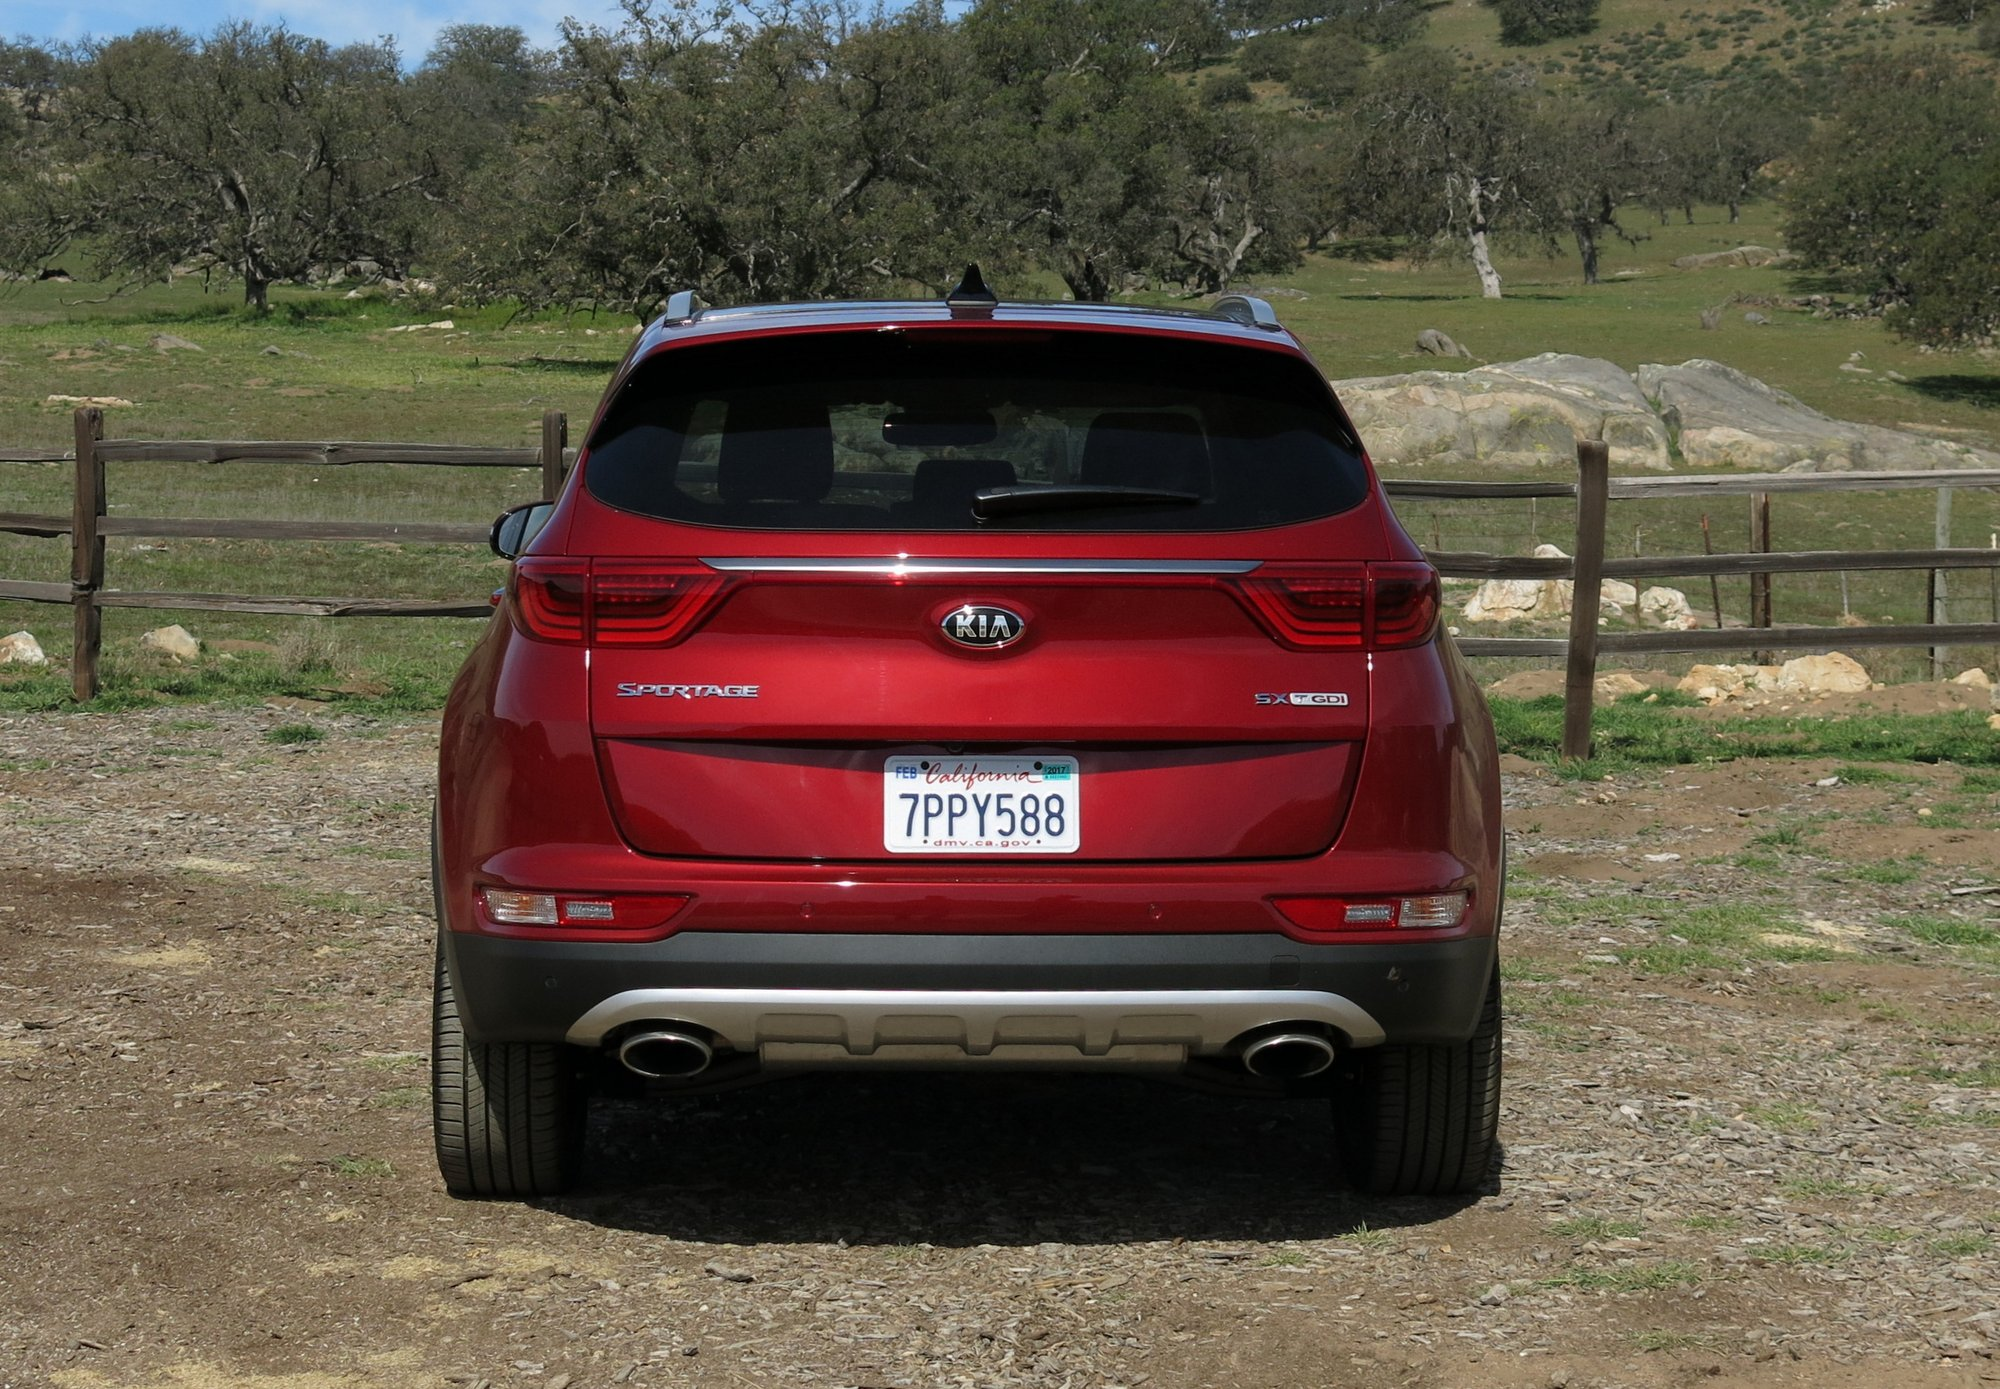 2017 Kia Sportage Exterior Rear Image 2016 Alex S The Truth About